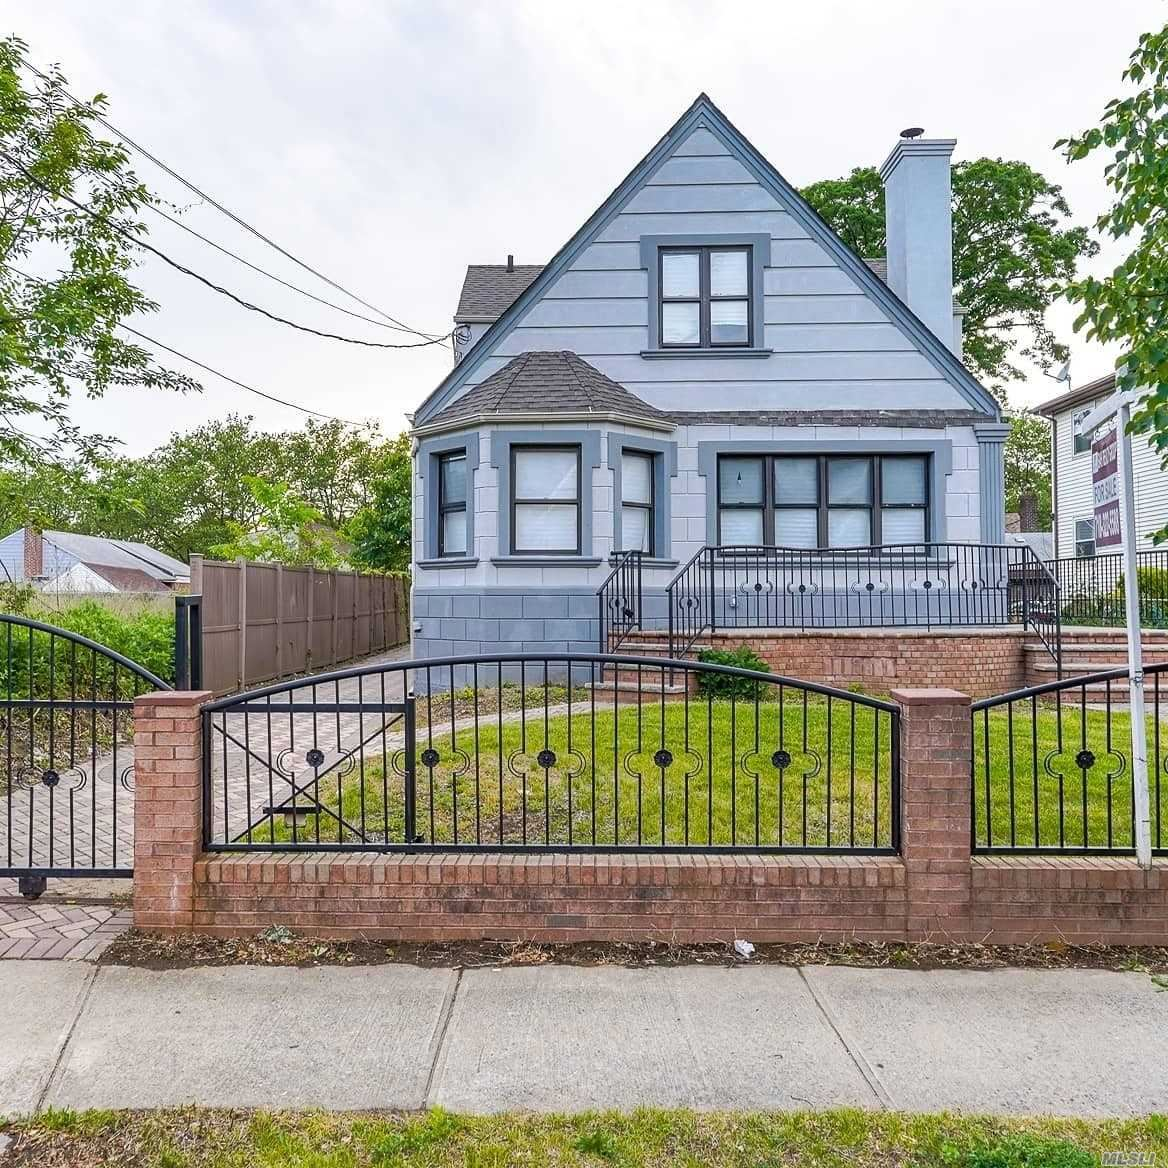 137-44 224th St, Laurelton, NY 11413 - MLS#: 3214814